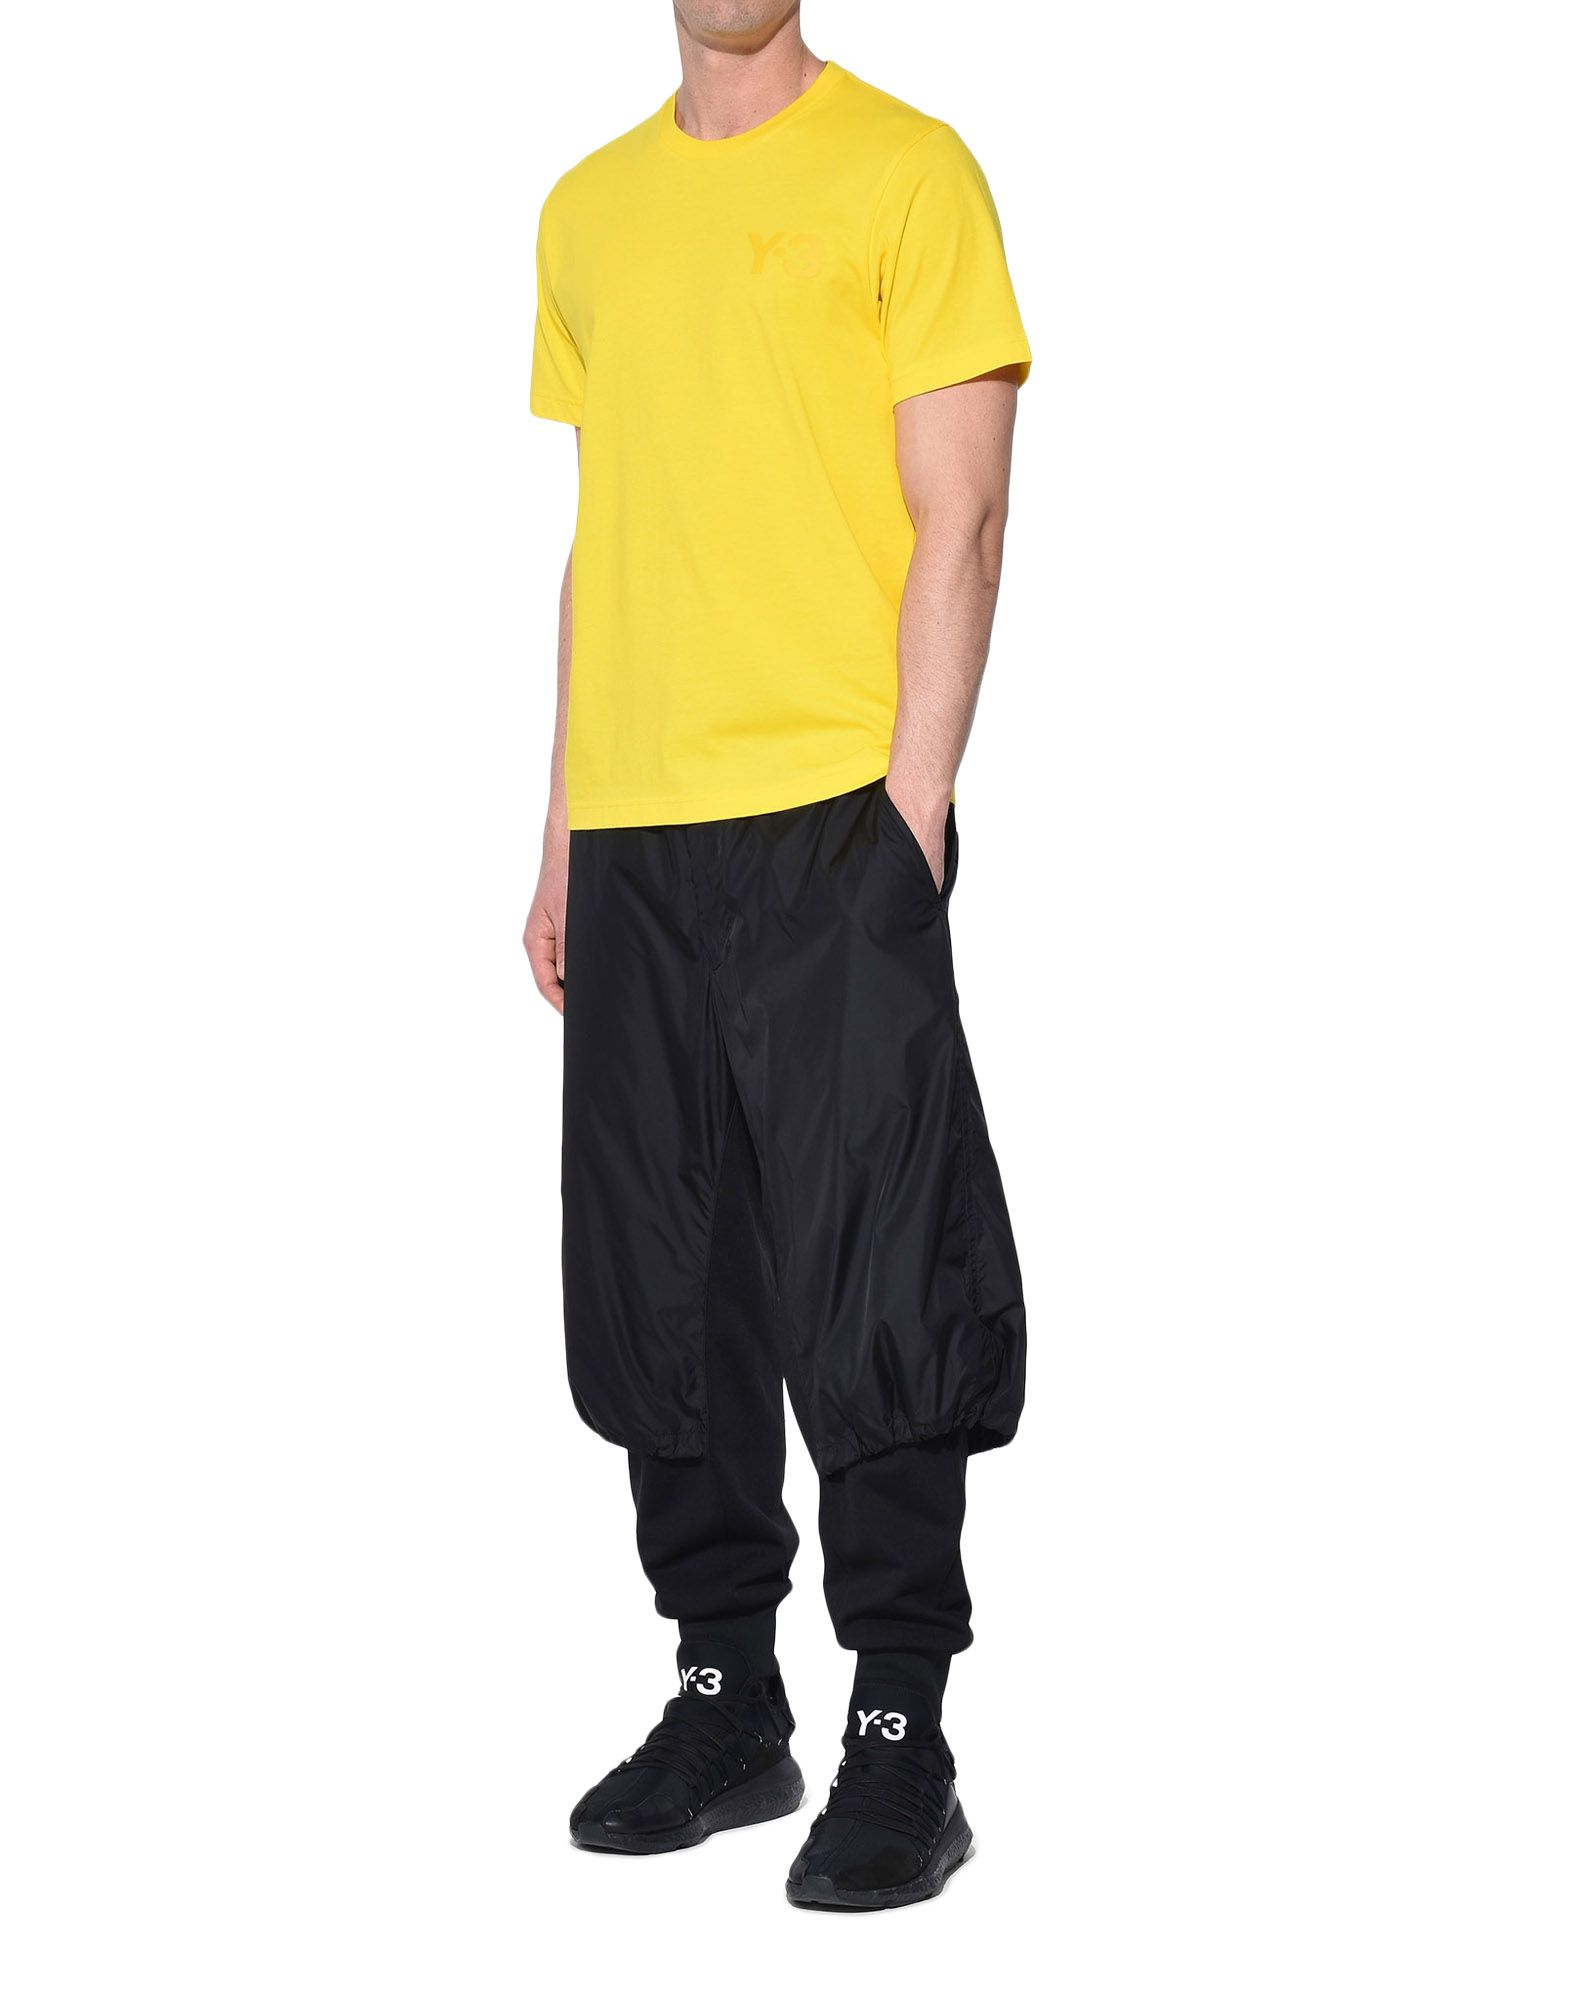 Y-3 Y-3 Classic Tee Short sleeve t-shirt Man a